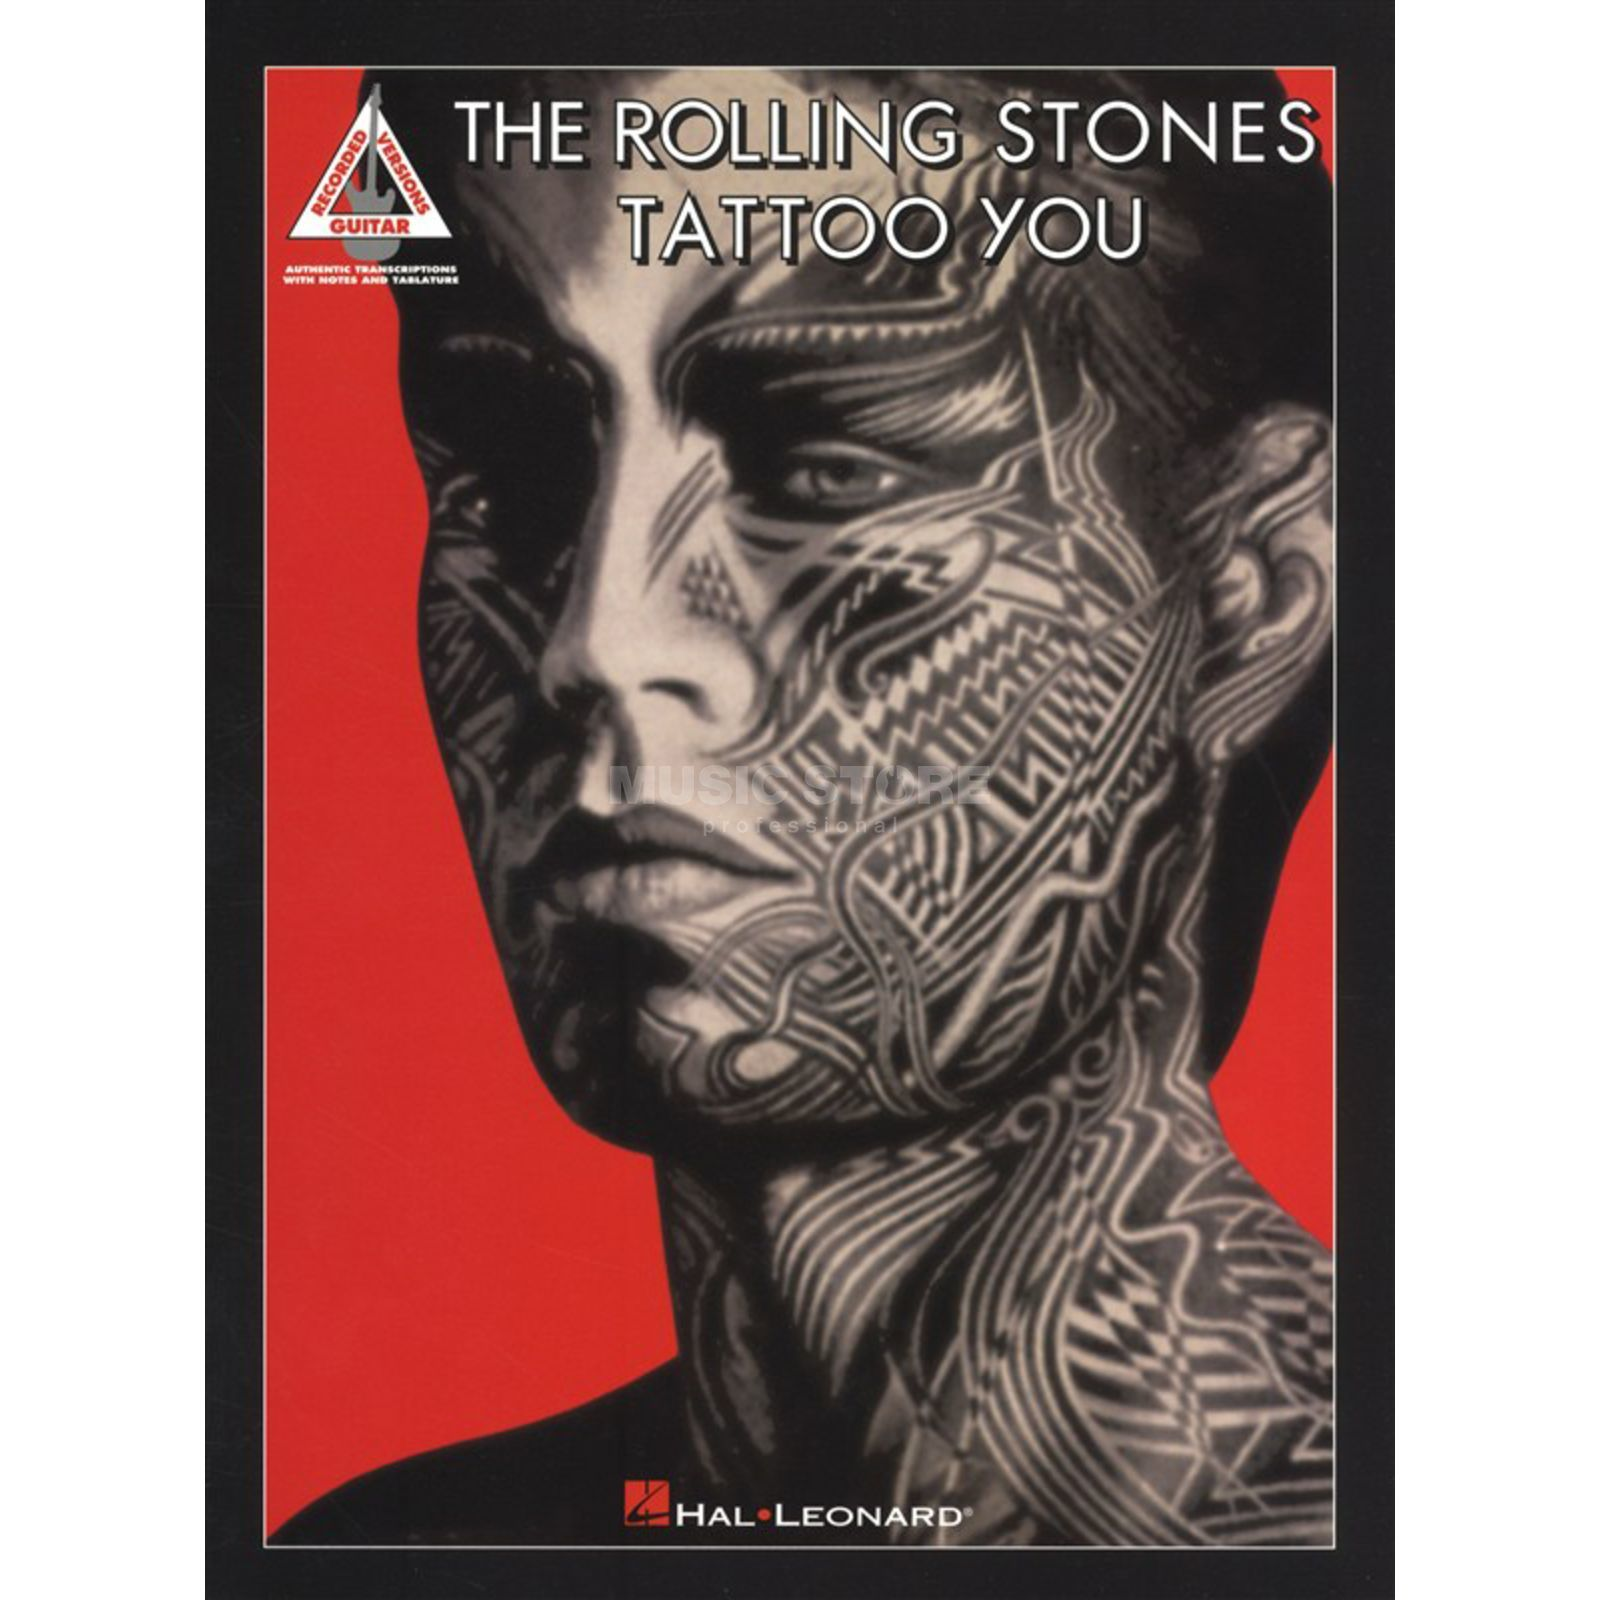 Hal Leonard The Rolling Stones: Tattoo You TAB Produktbillede